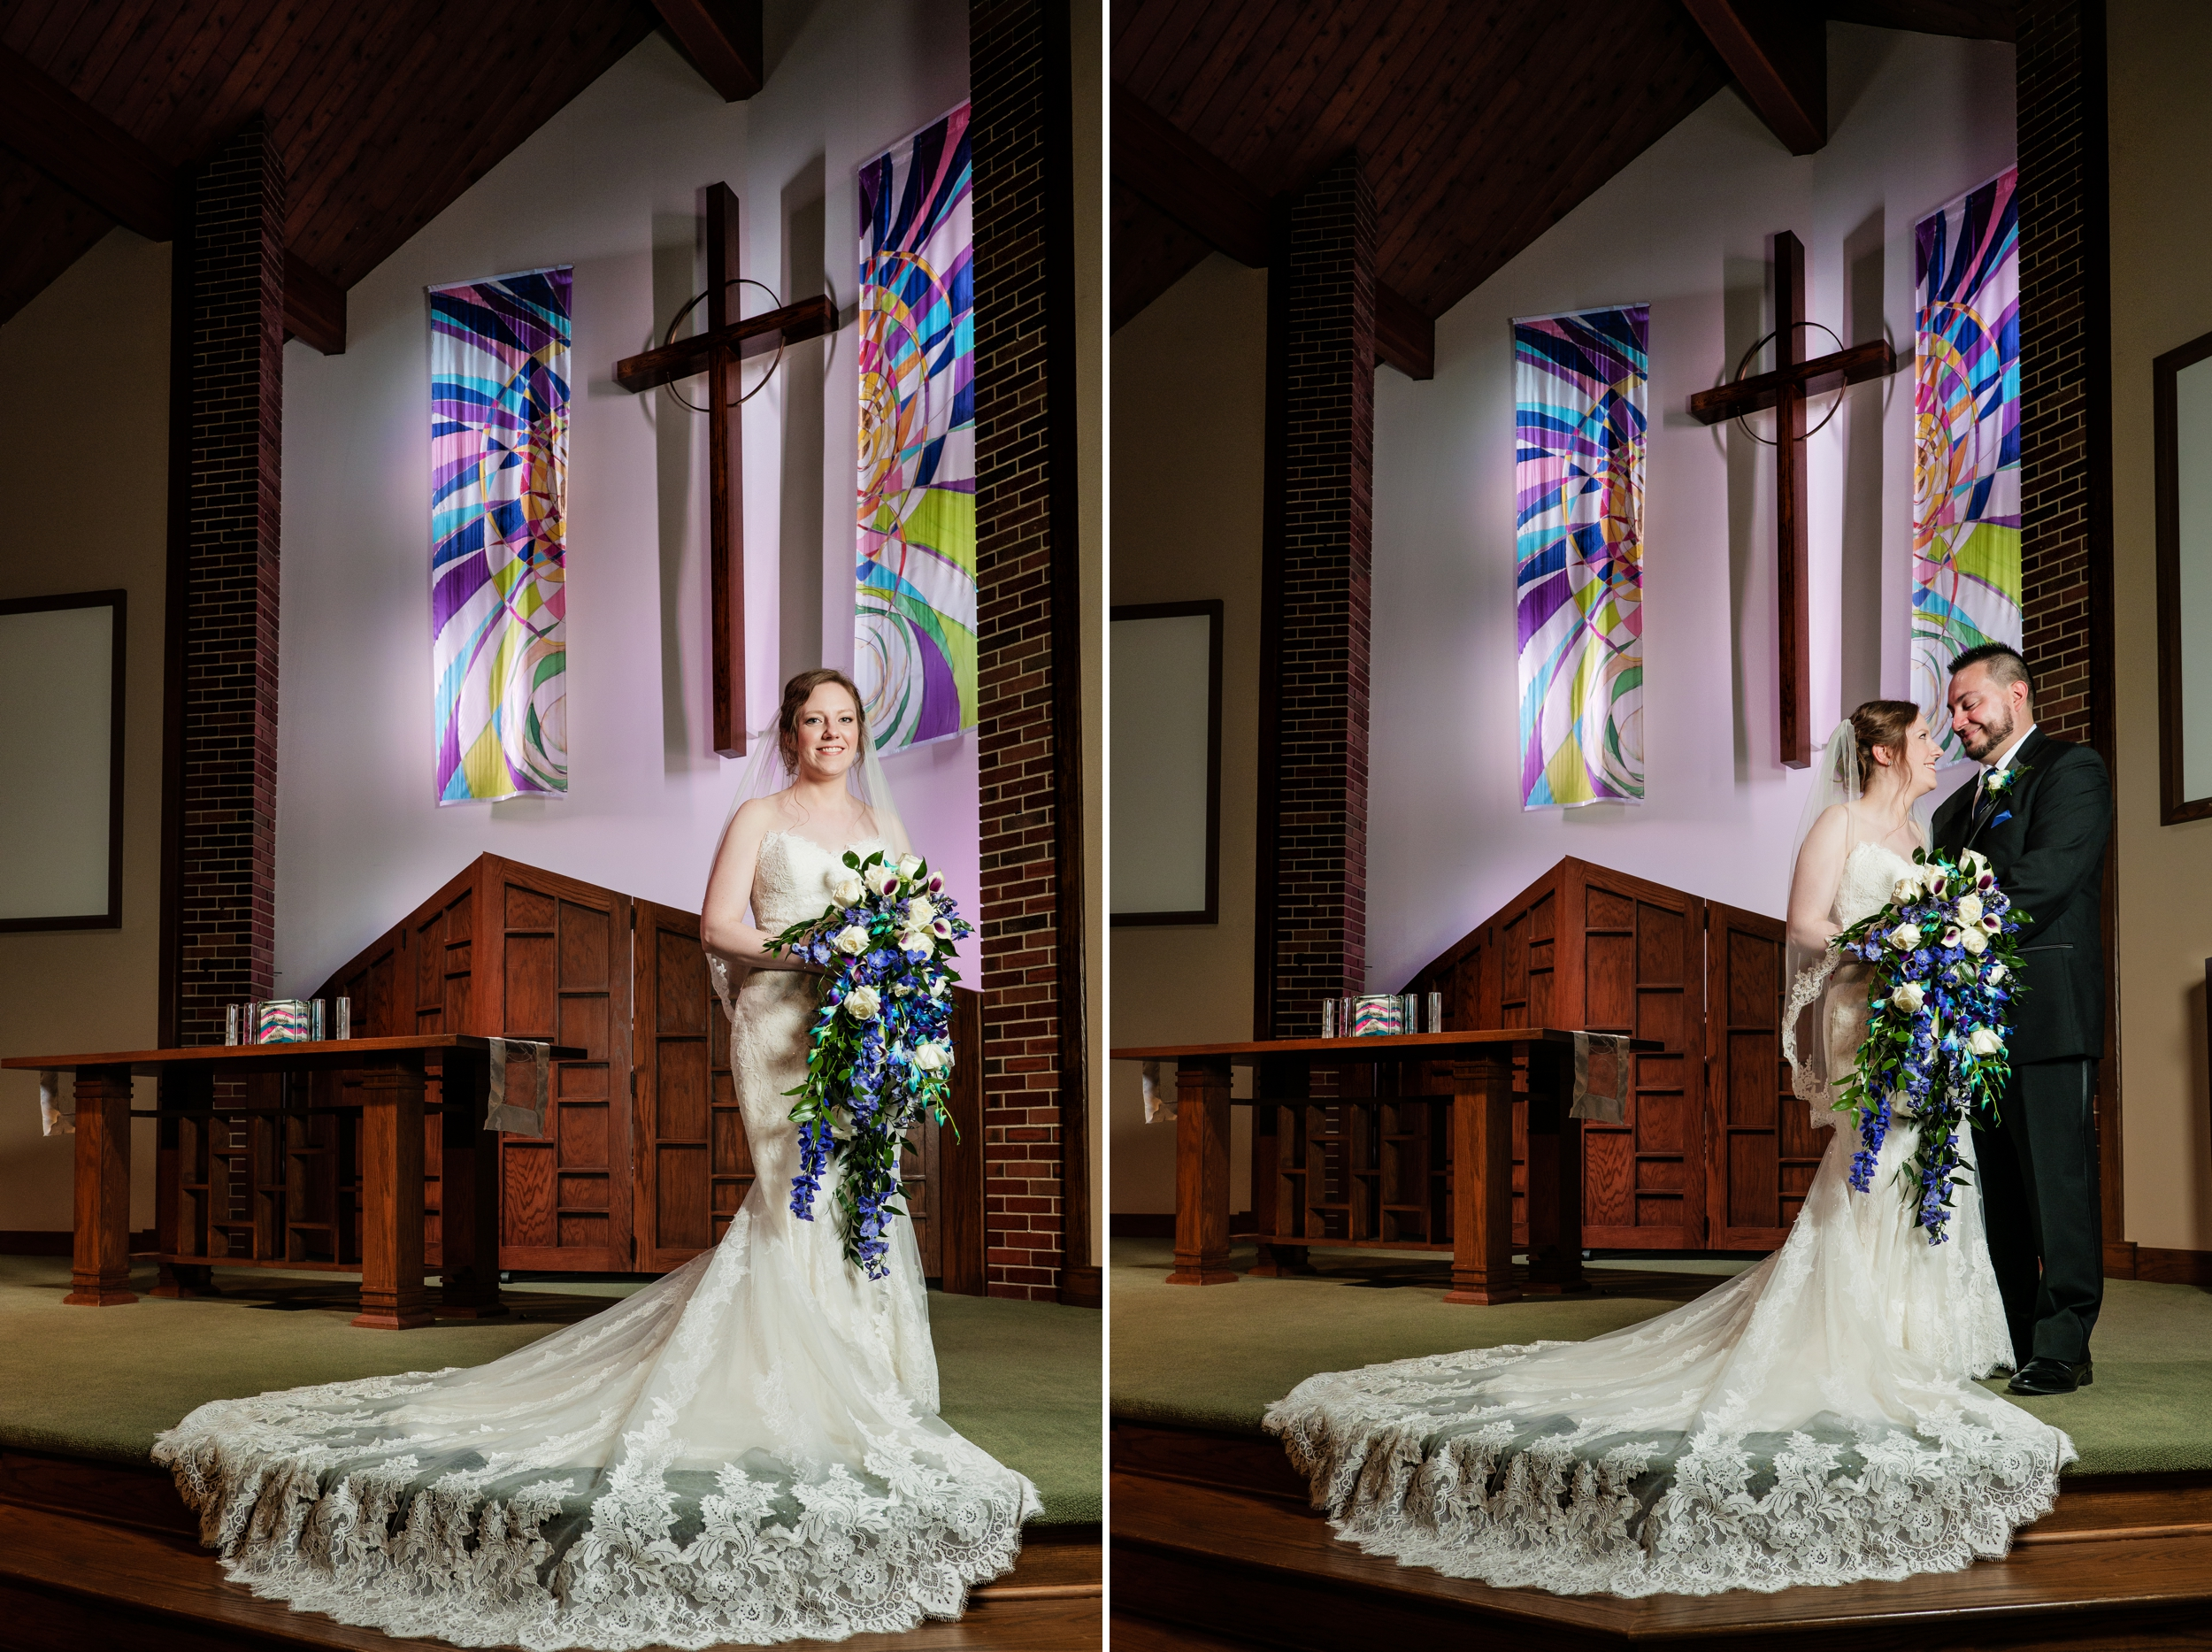 Bride and groom on the altar at Westminster Church in Munster, Indiana.